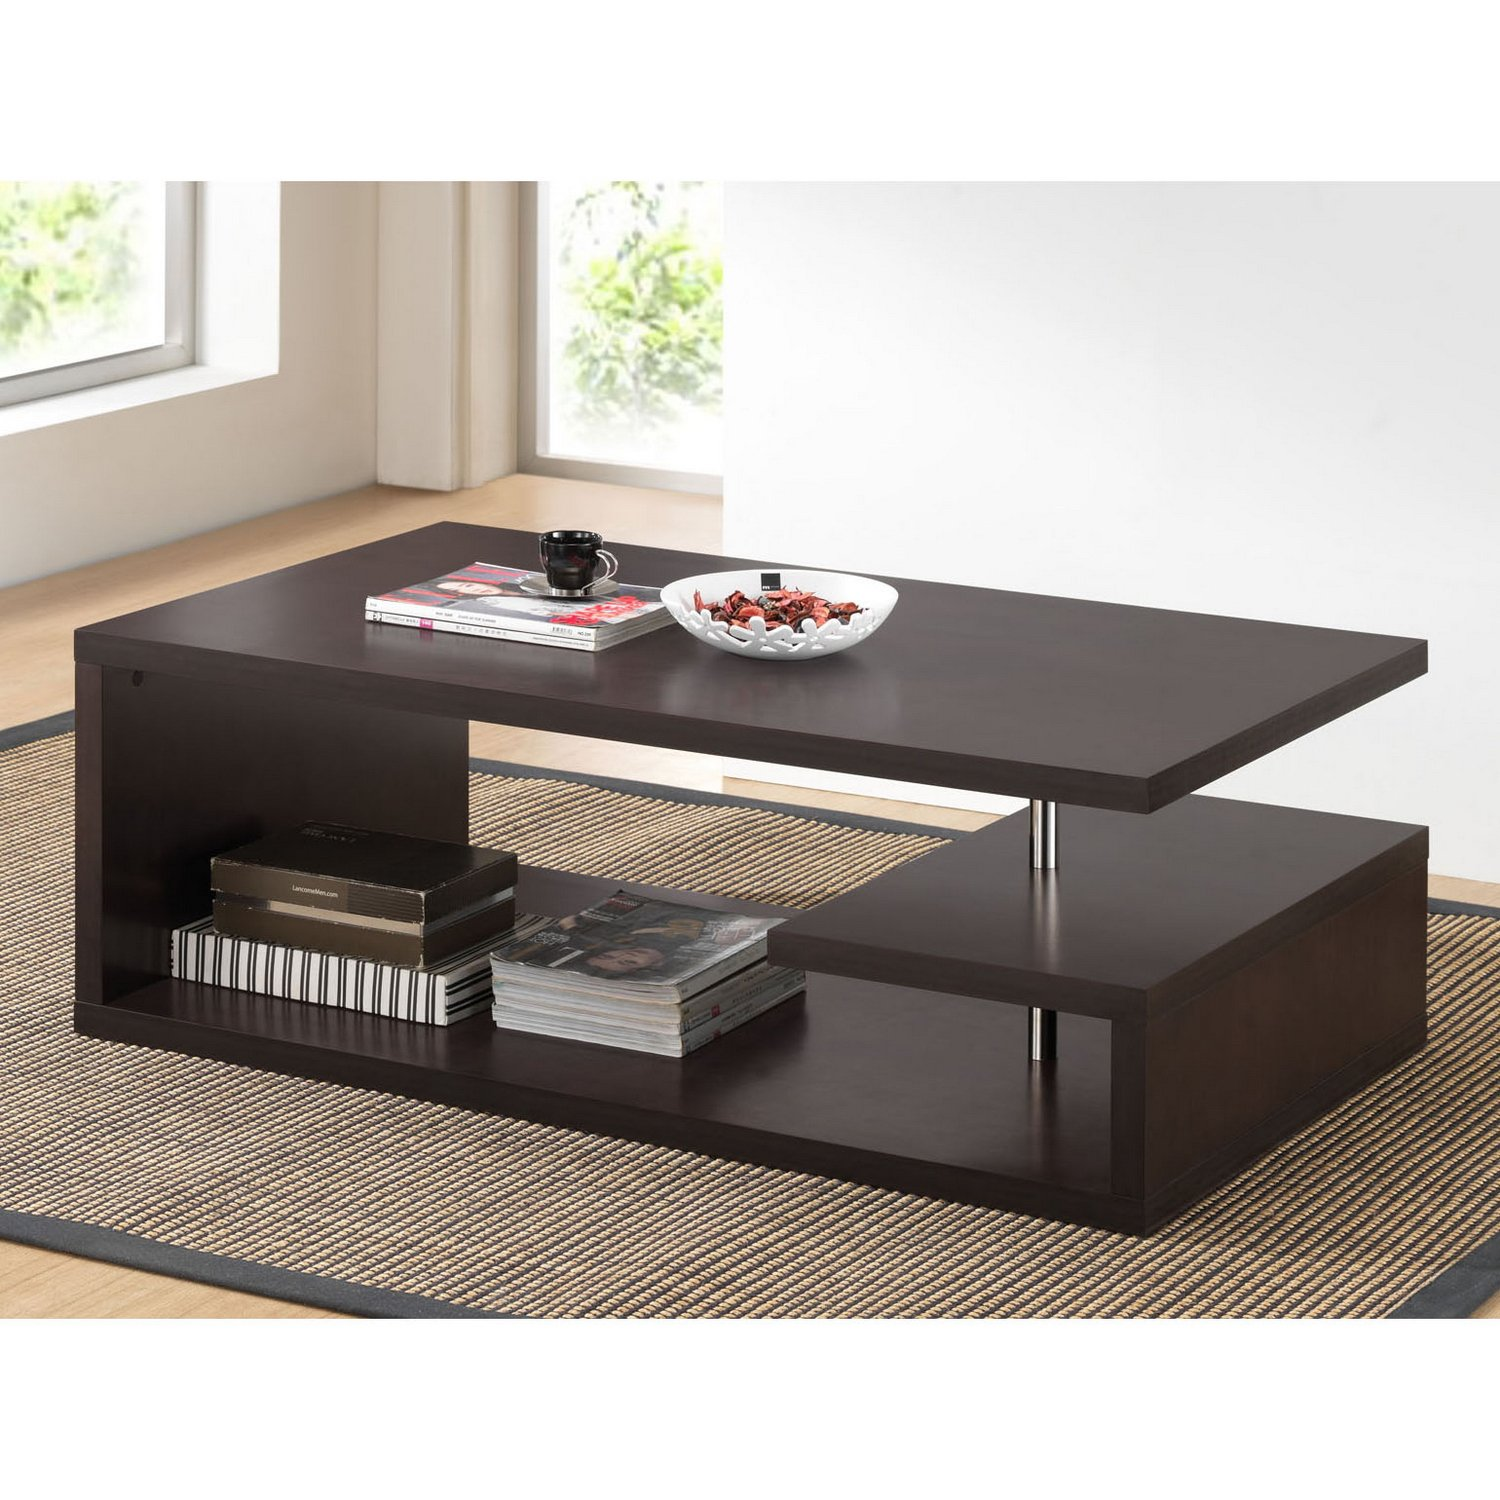 amazoncom baxton studio lindy modern coffee table dark brown kitchen dining. amazoncom baxton studio lindy modern coffee table dark brown